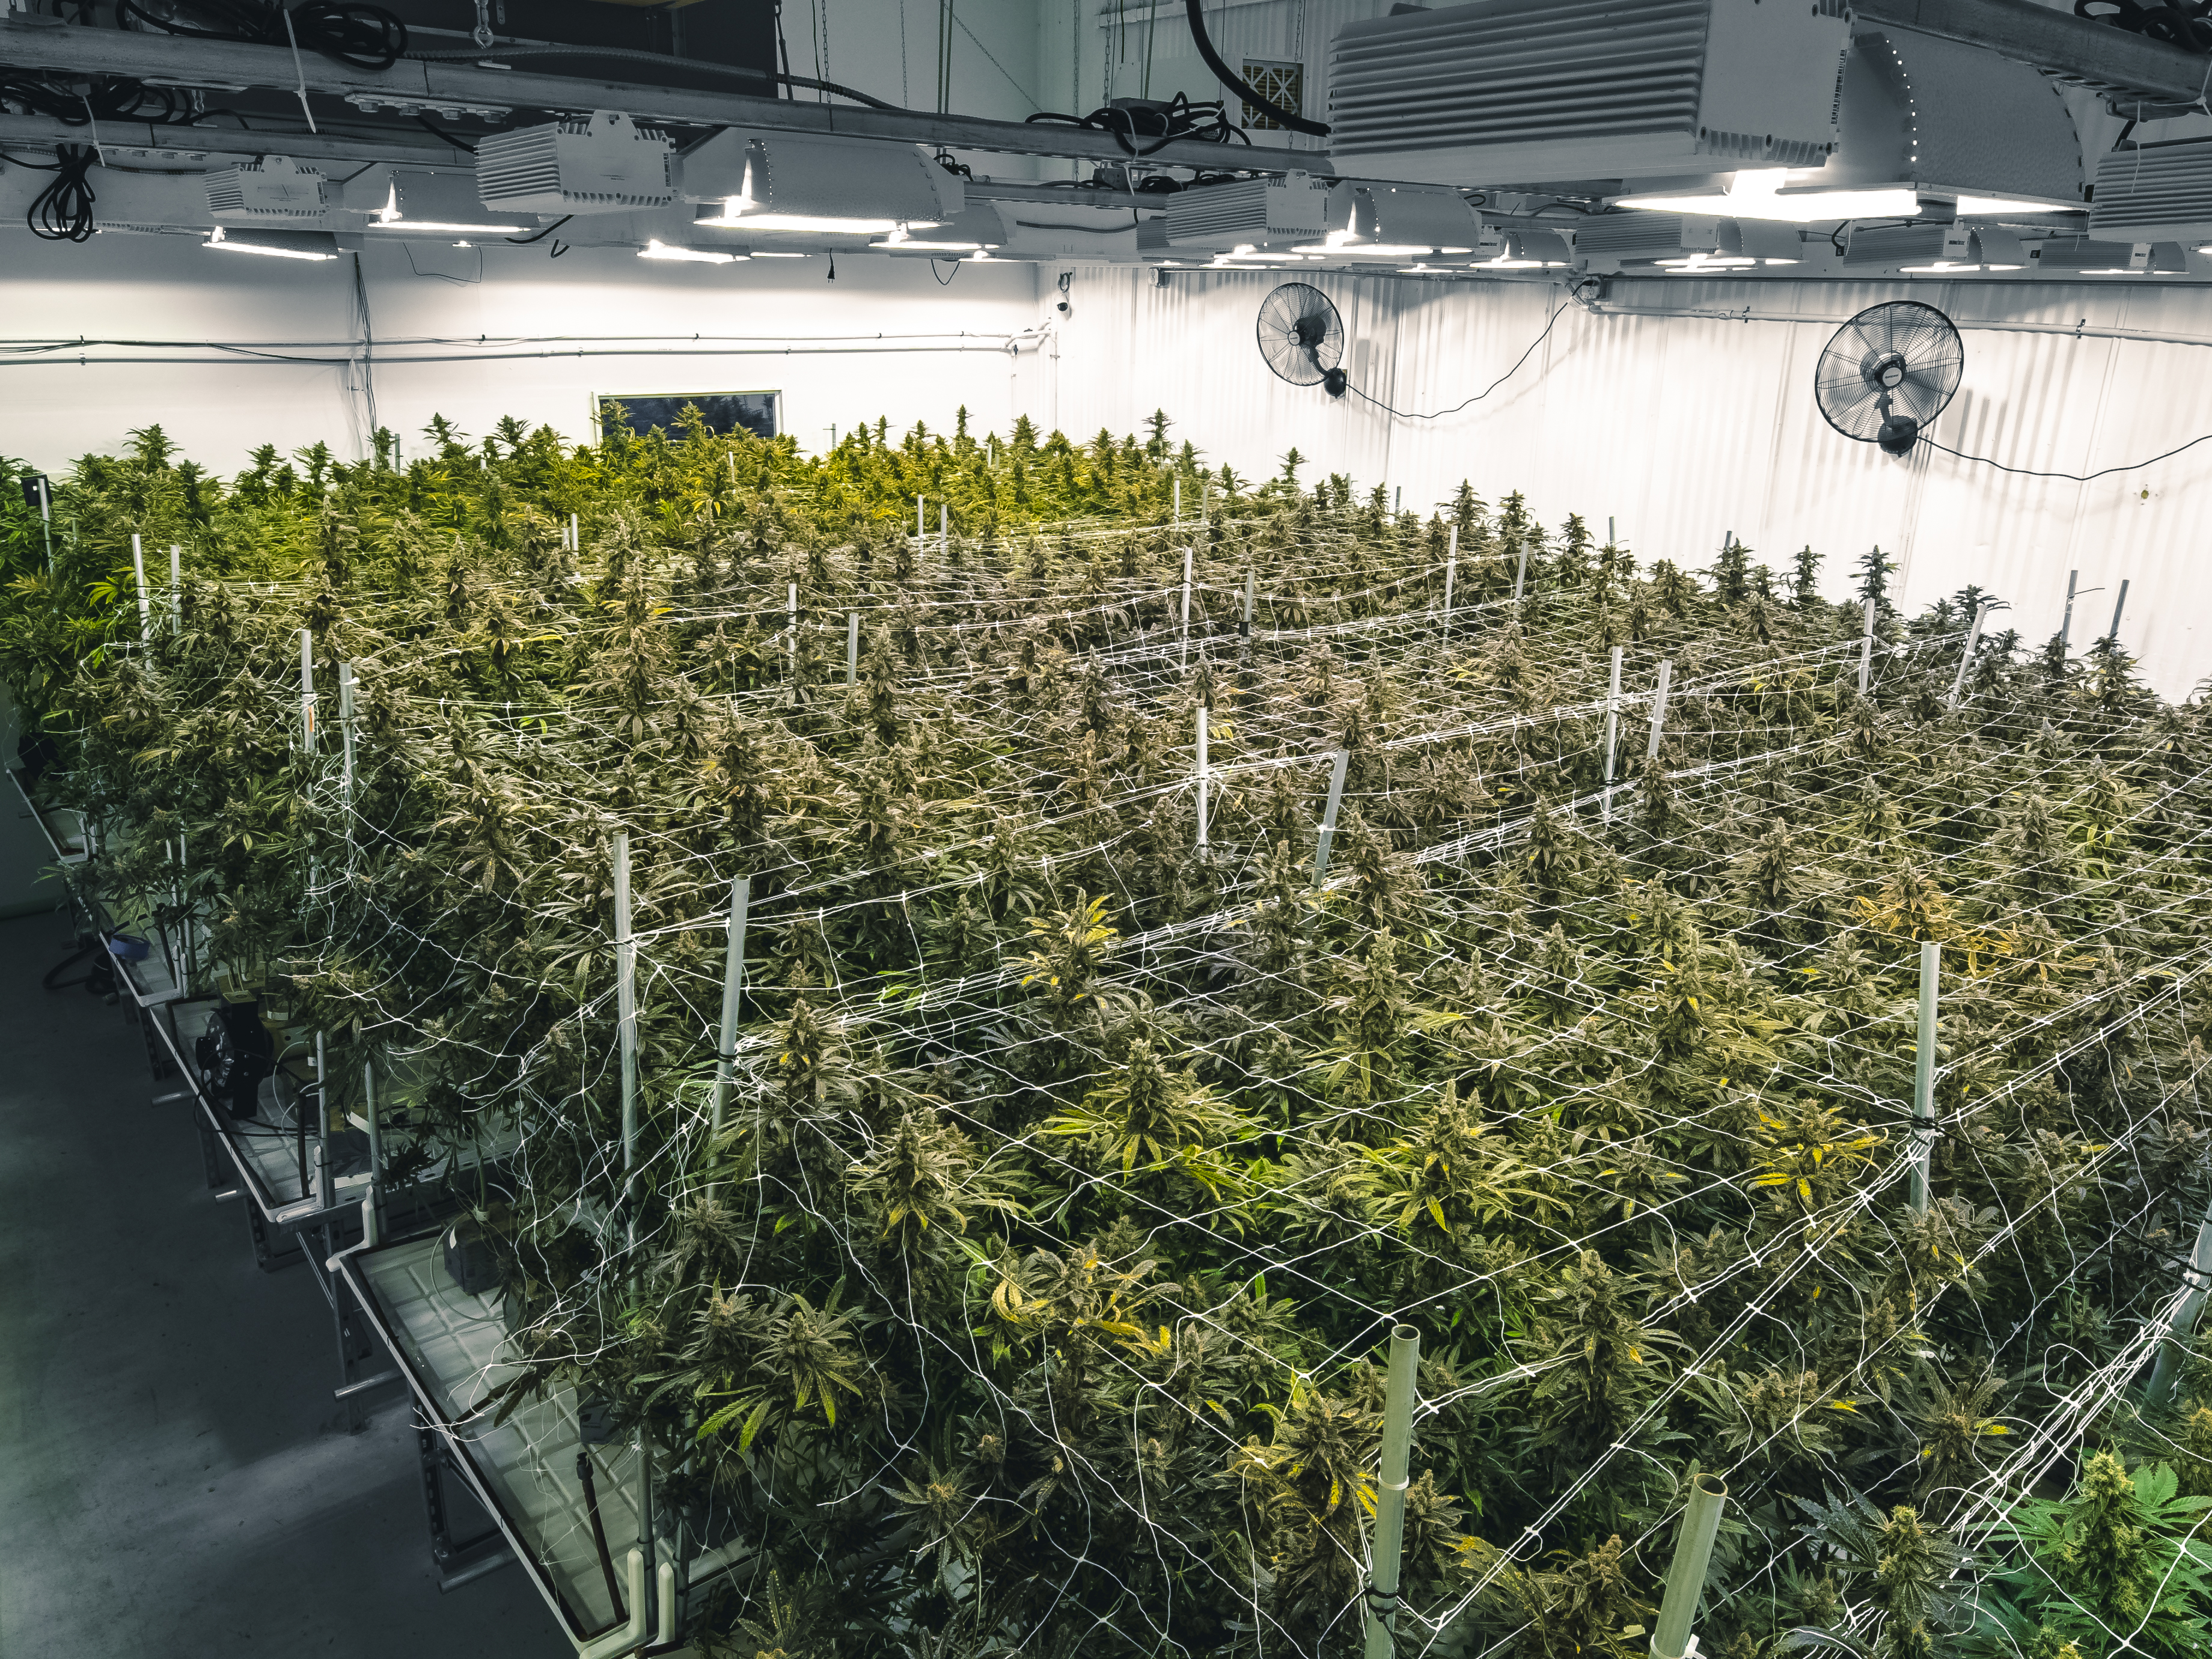 Facility for cannabis cultivation under indoor lights with colorful green leafy buds on tall branches